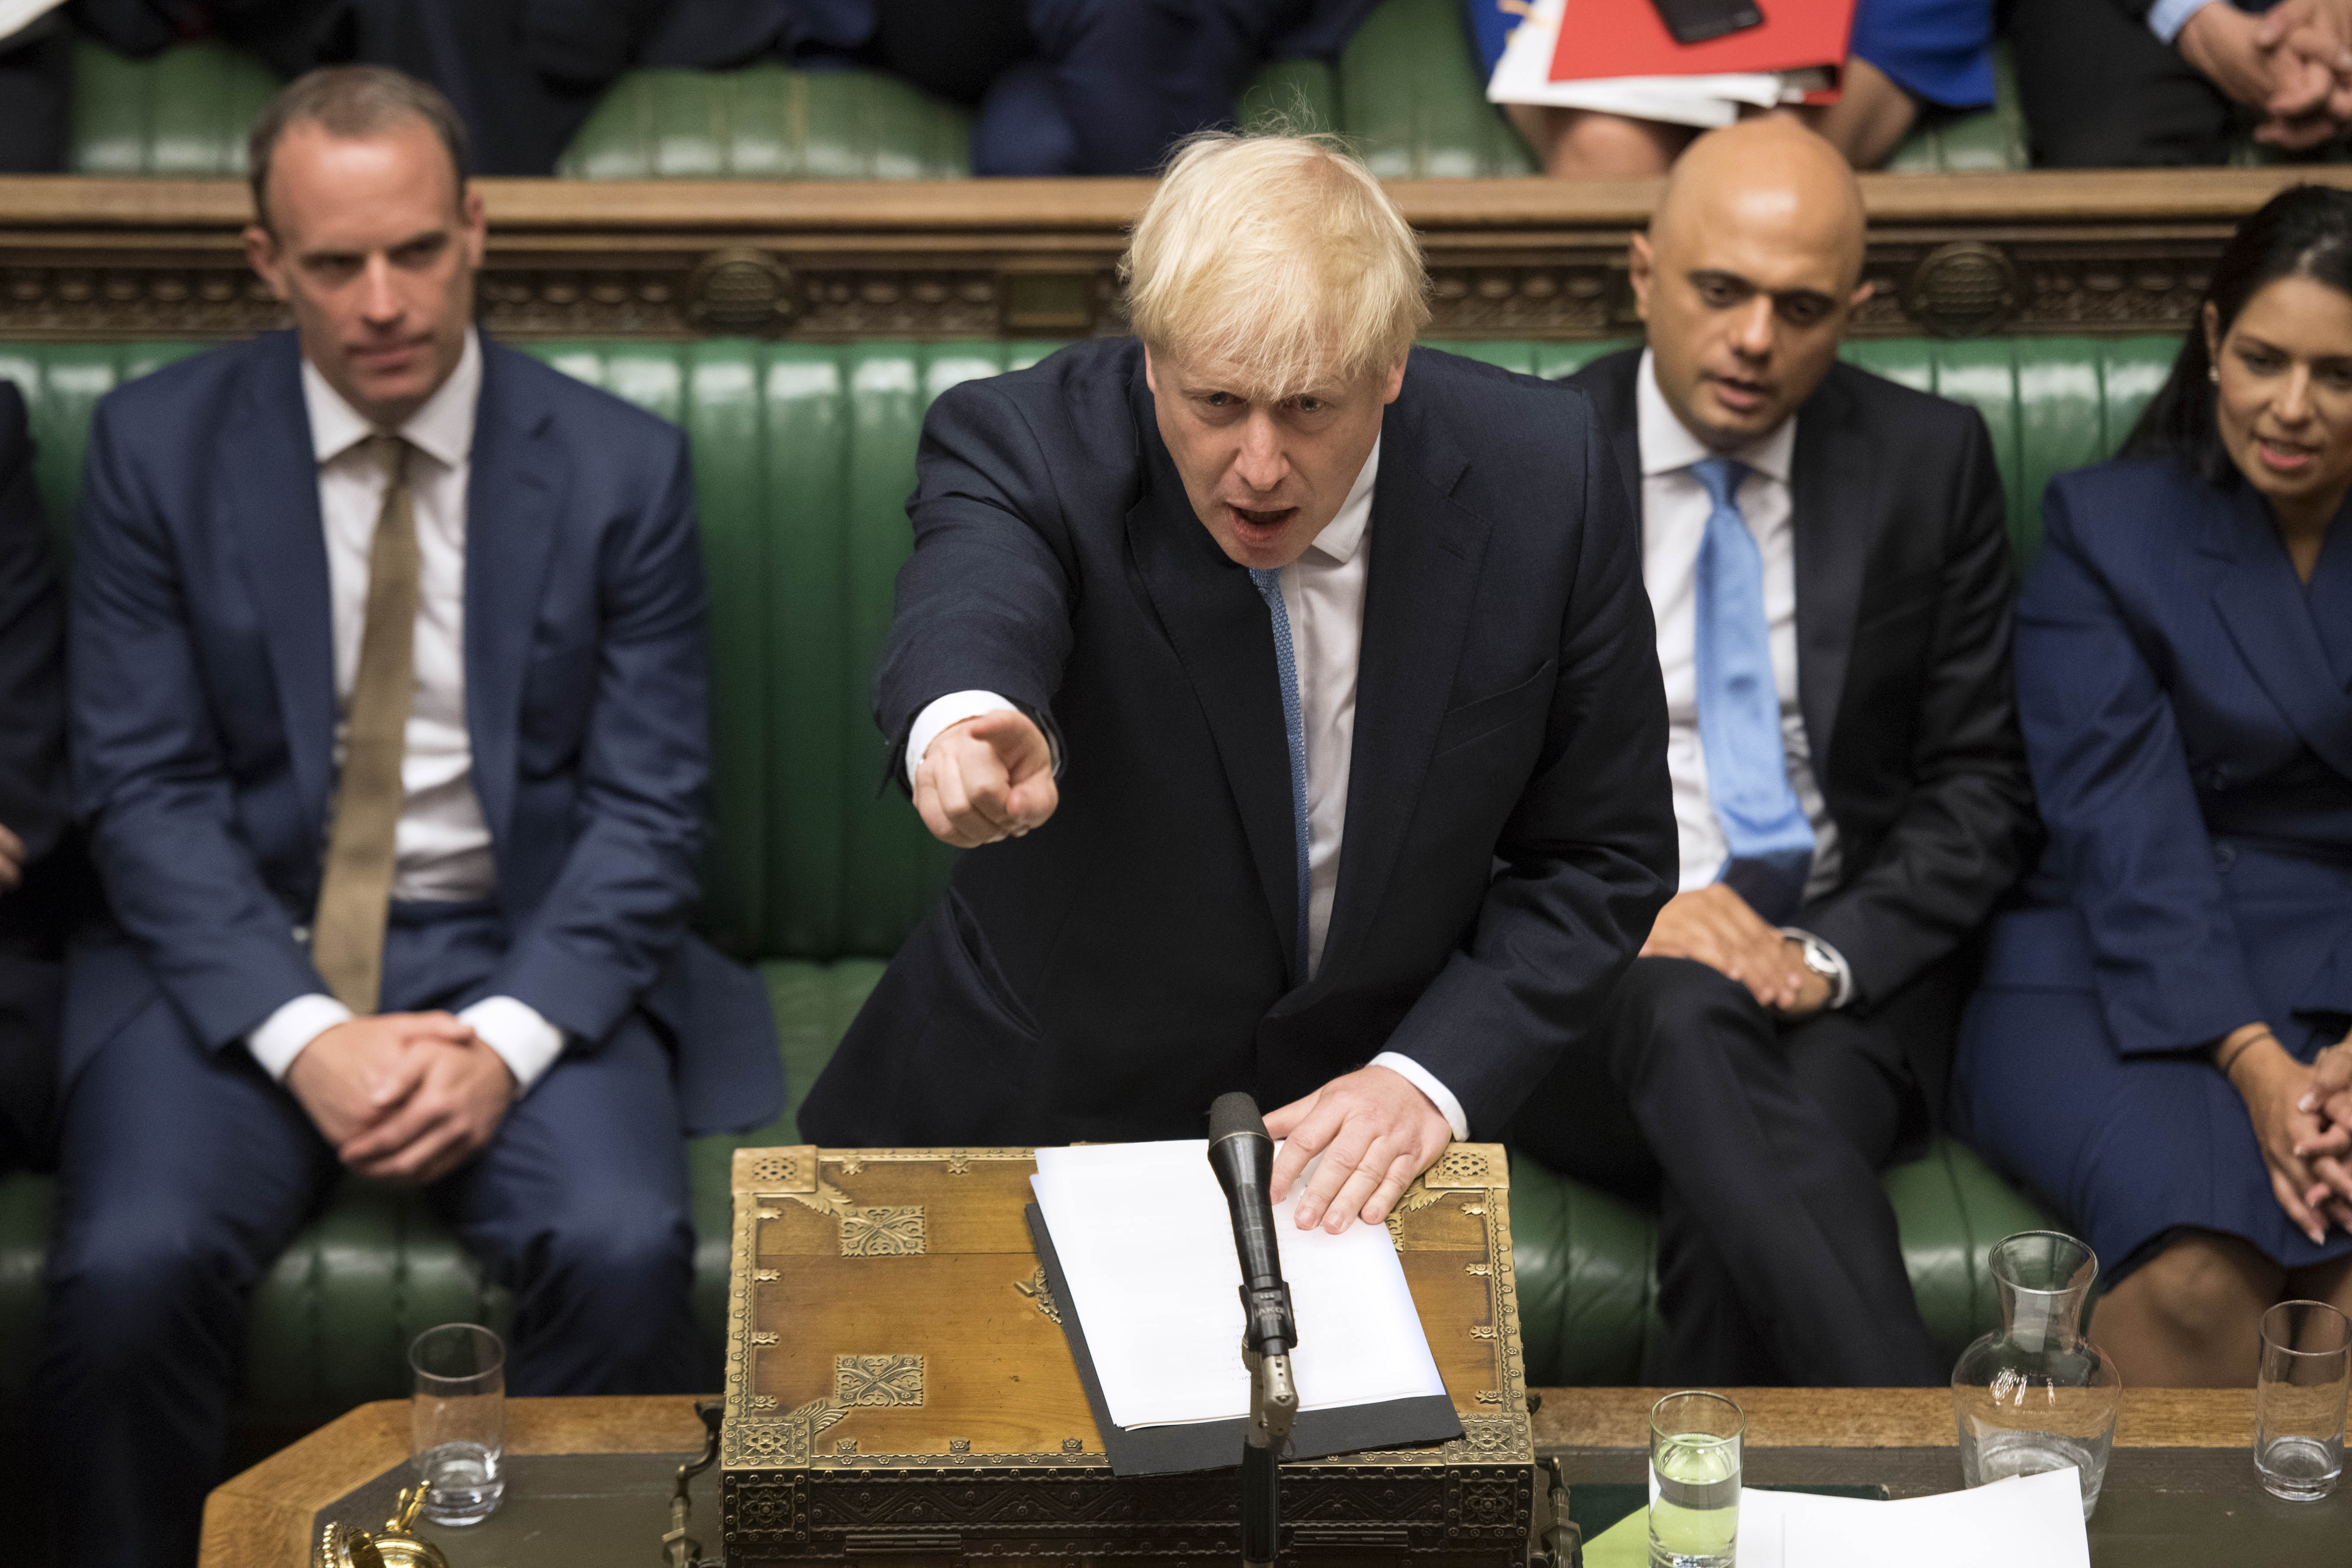 War of words! London, Brussels clash over PM Johnson's Brexit demands - Xinhua | English.news.cn